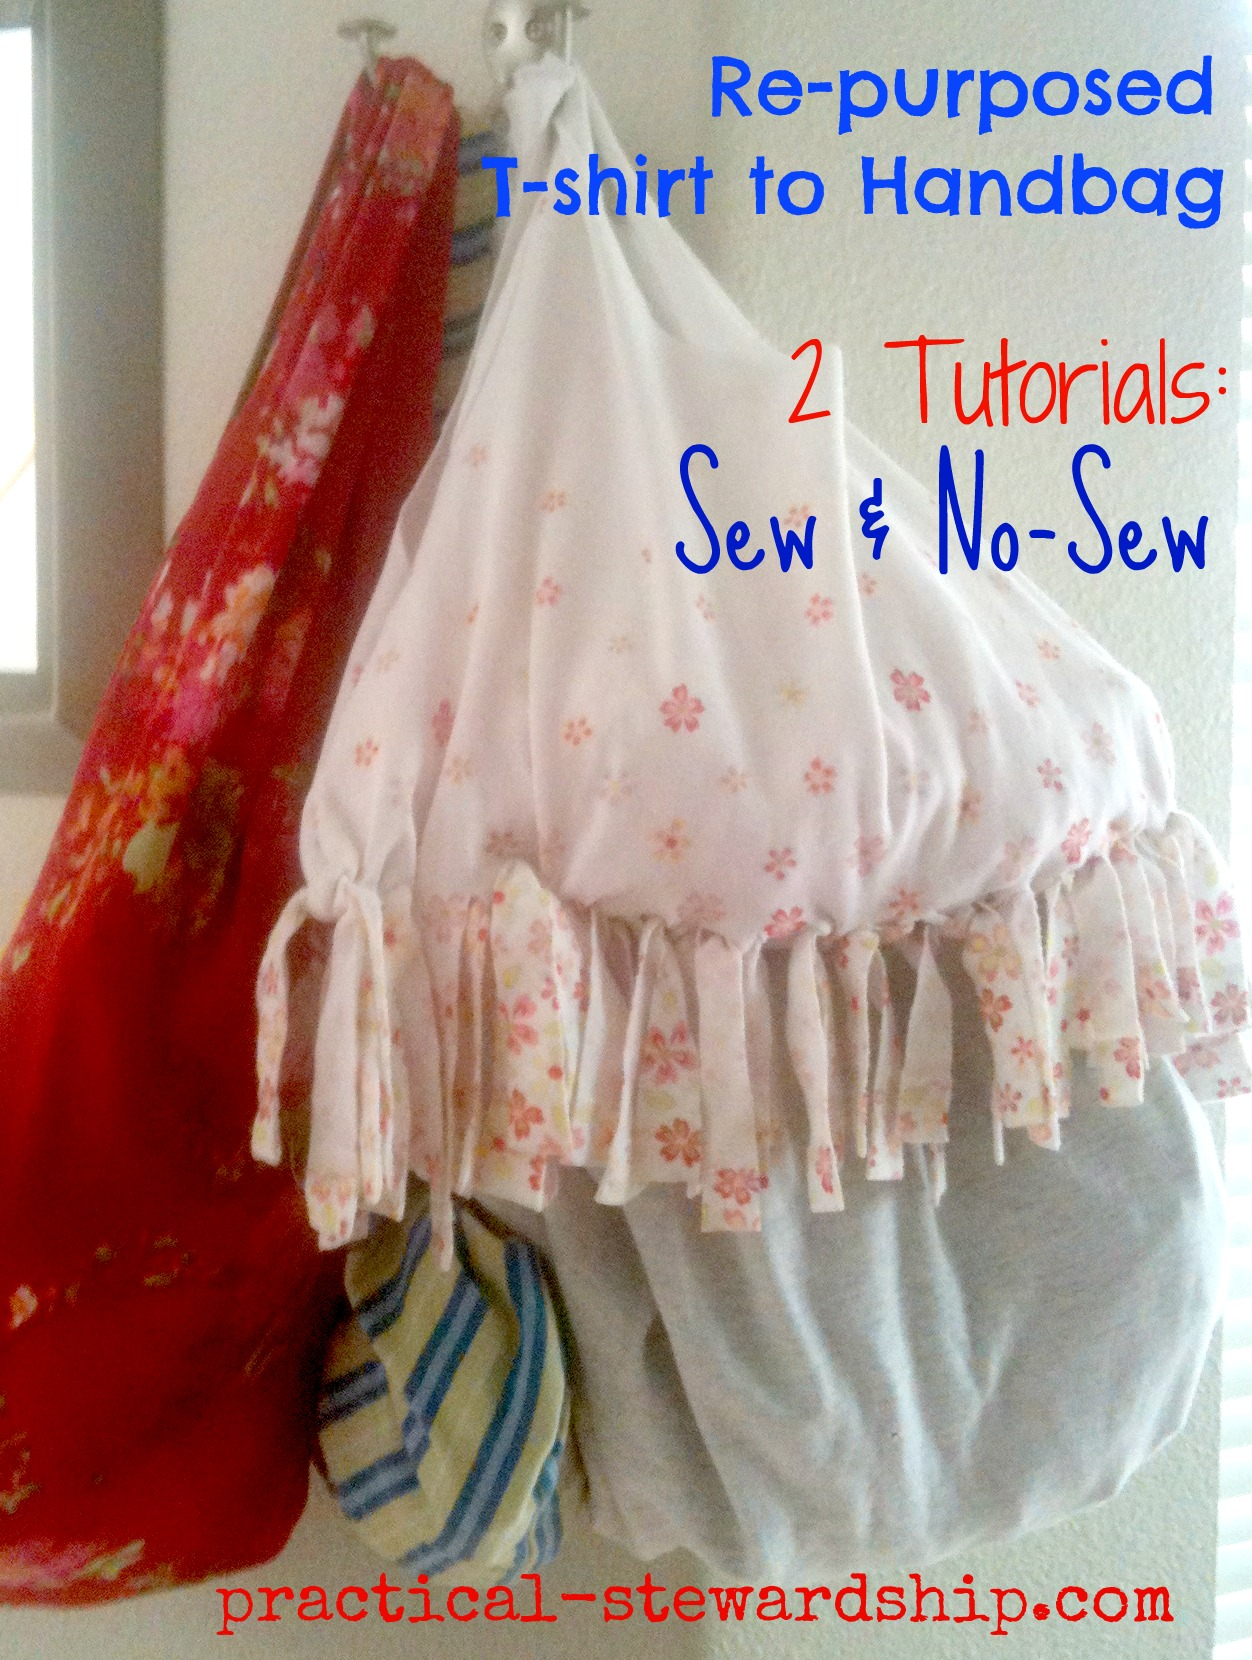 Re-purposed T-shirt to Handbag: 2 Different Tutorials Sewing & No-sew